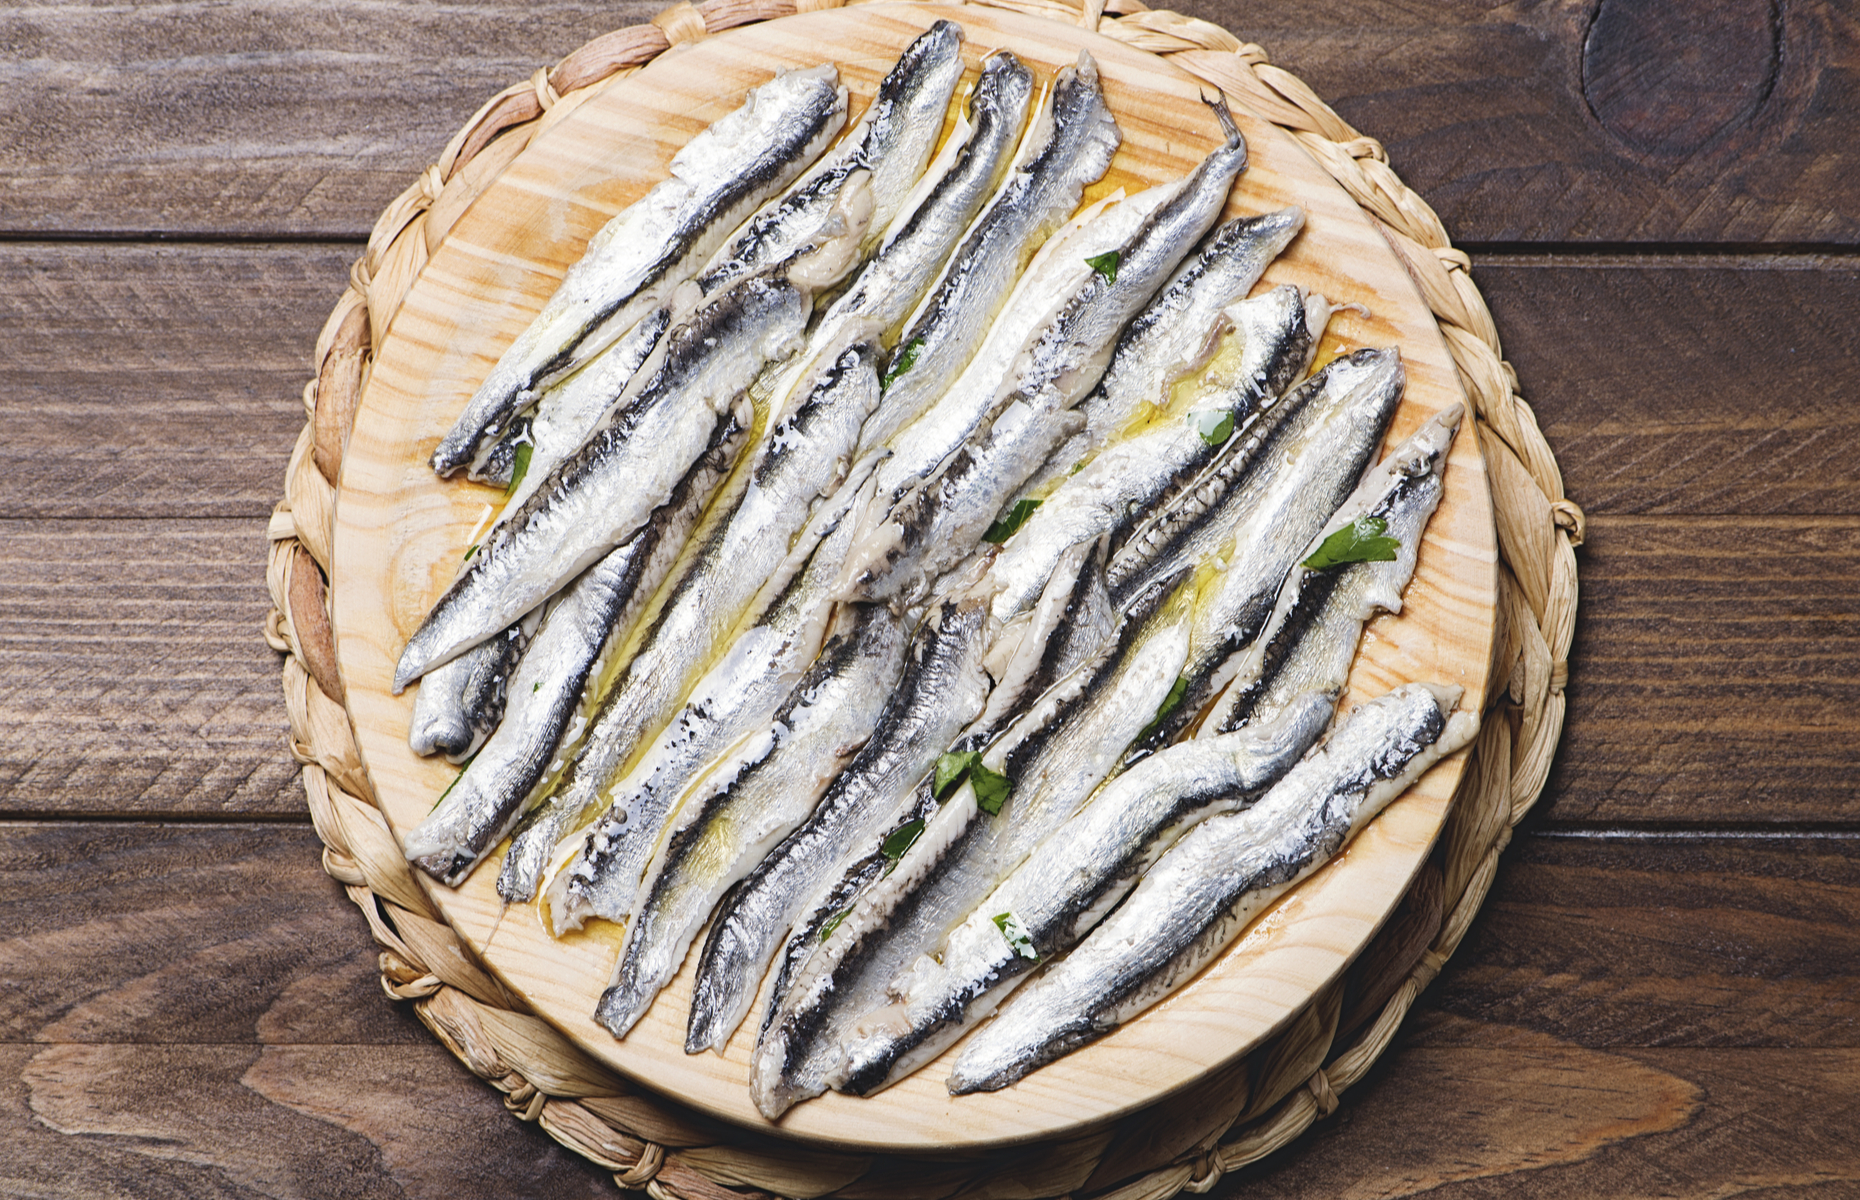 Marinated anchovies on a board (Image: Lleistock/Shutterstock)